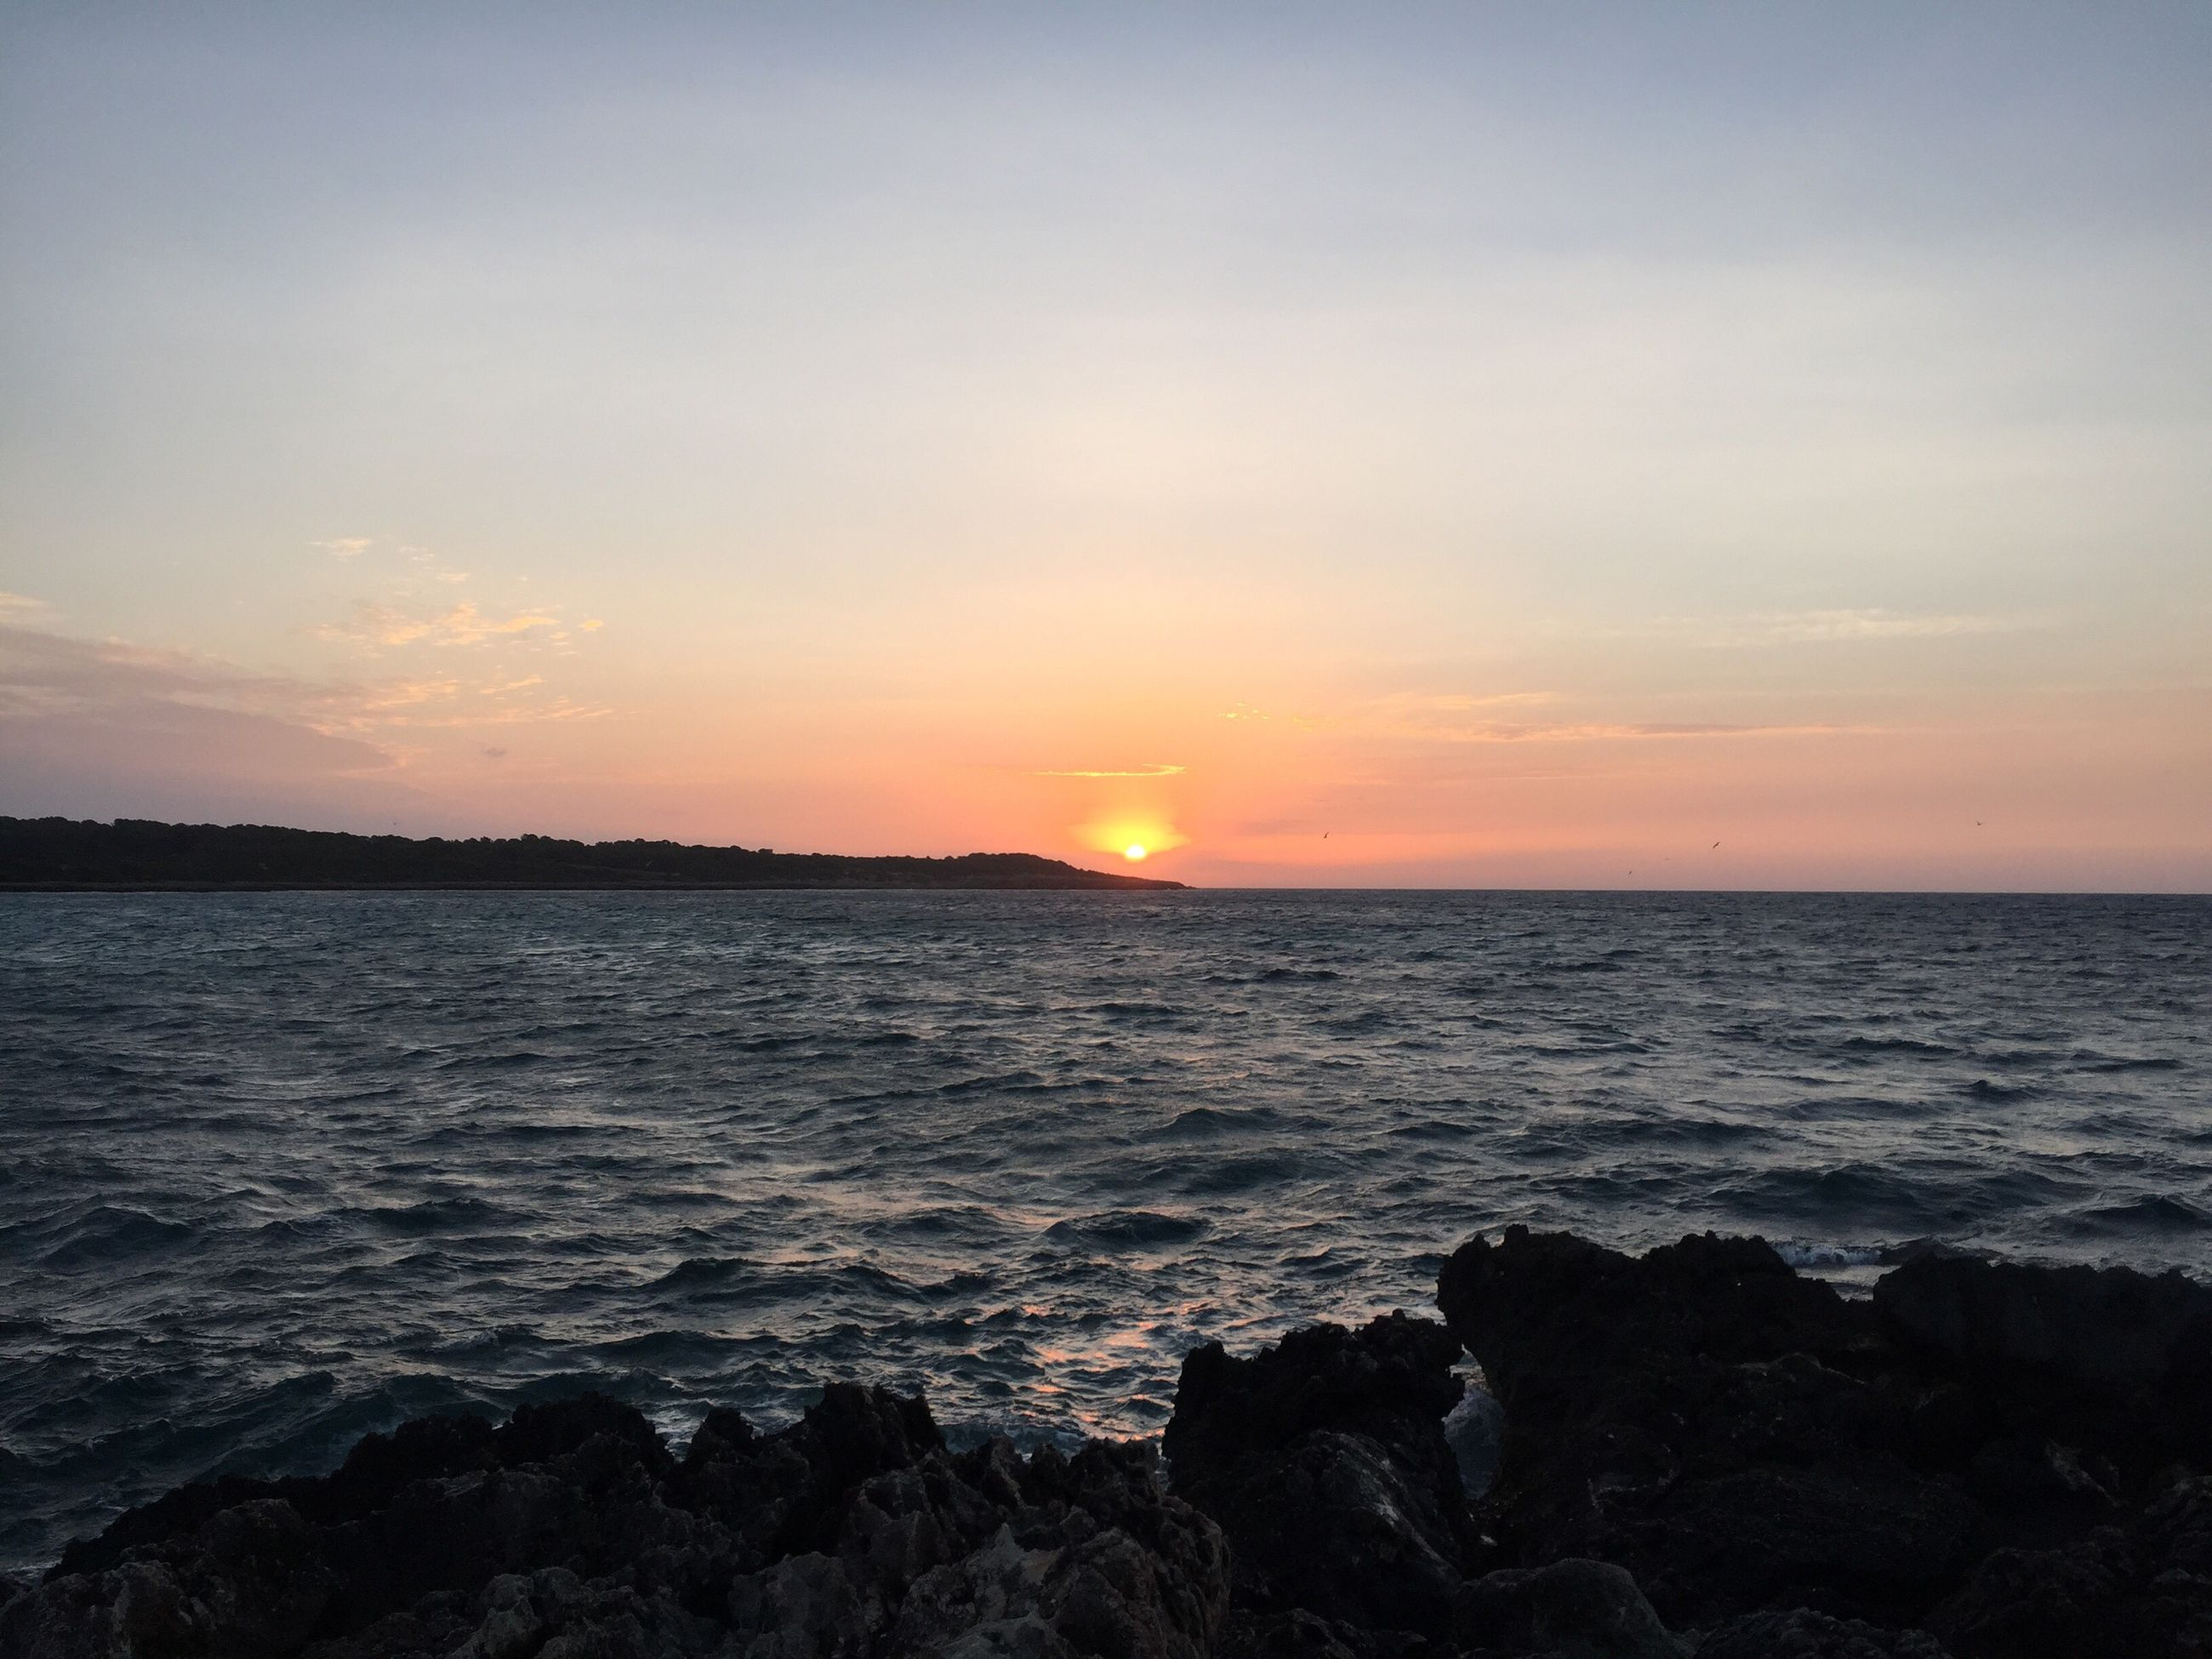 sunset, water, scenics, sun, tranquil scene, sea, tranquility, beauty in nature, rippled, idyllic, orange color, nature, sky, travel destinations, seascape, non-urban scene, tourism, vacations, majestic, remote, ocean, waterfront, calm, atmosphere, back lit, atmospheric mood, outdoors, moody sky, cloud - sky, wave